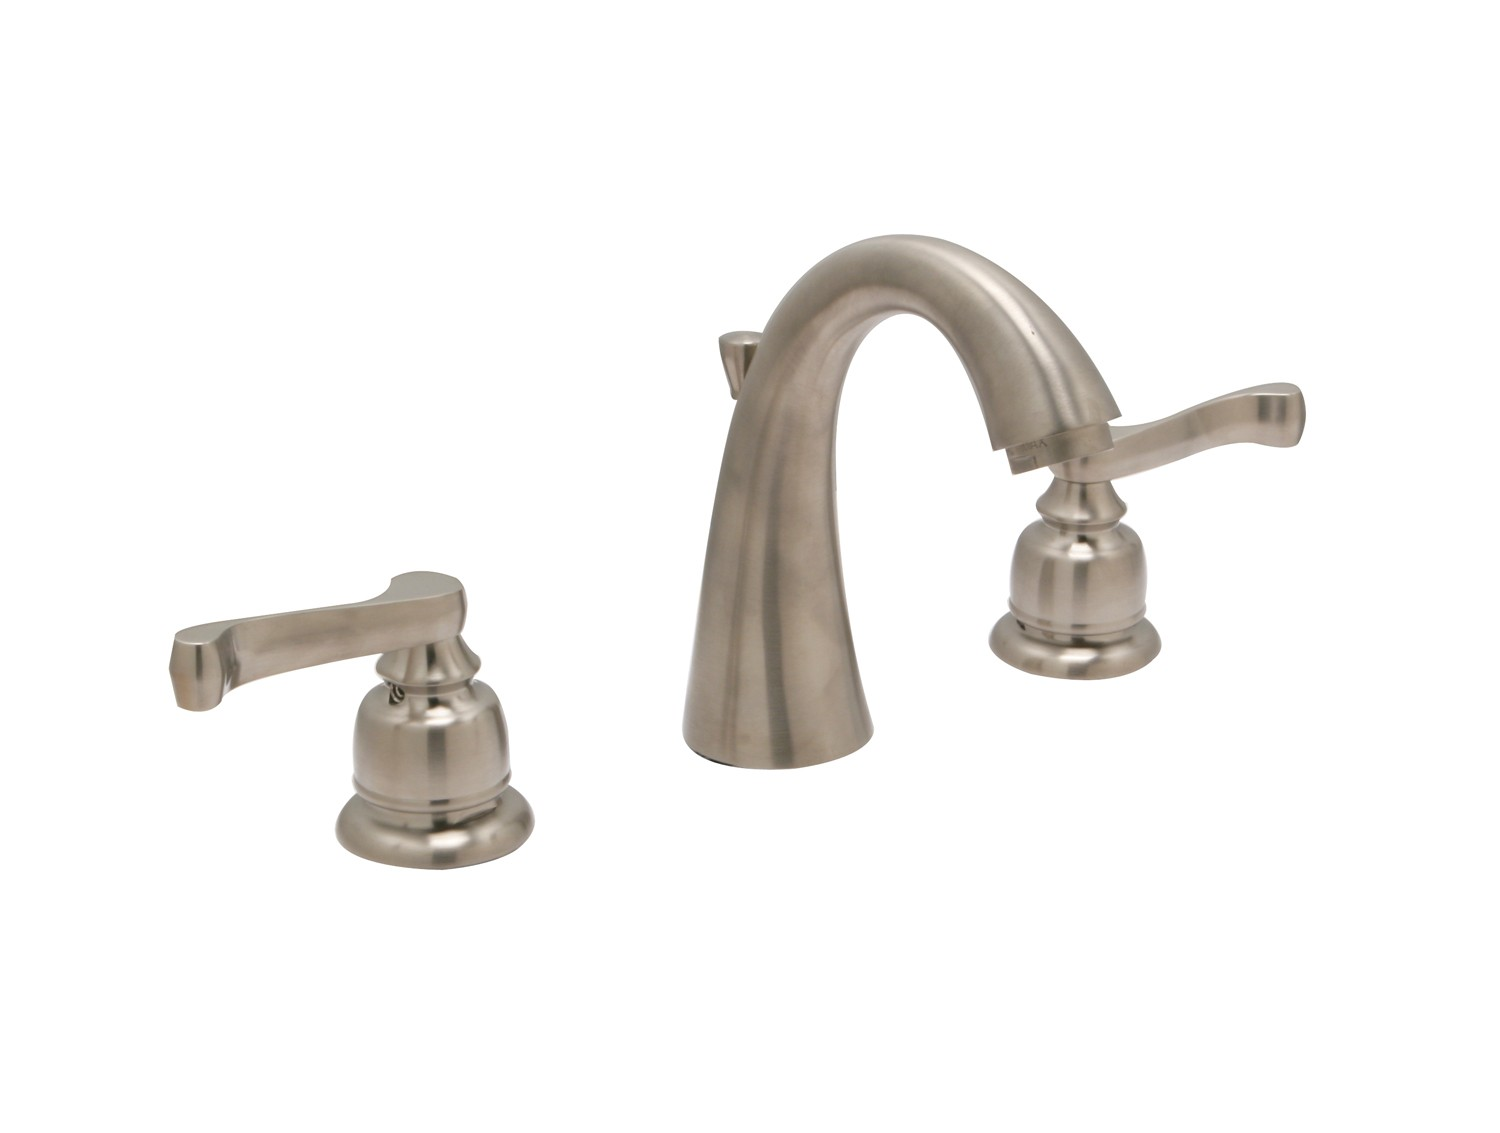 Sienna Widespread Faucet W4520702-1